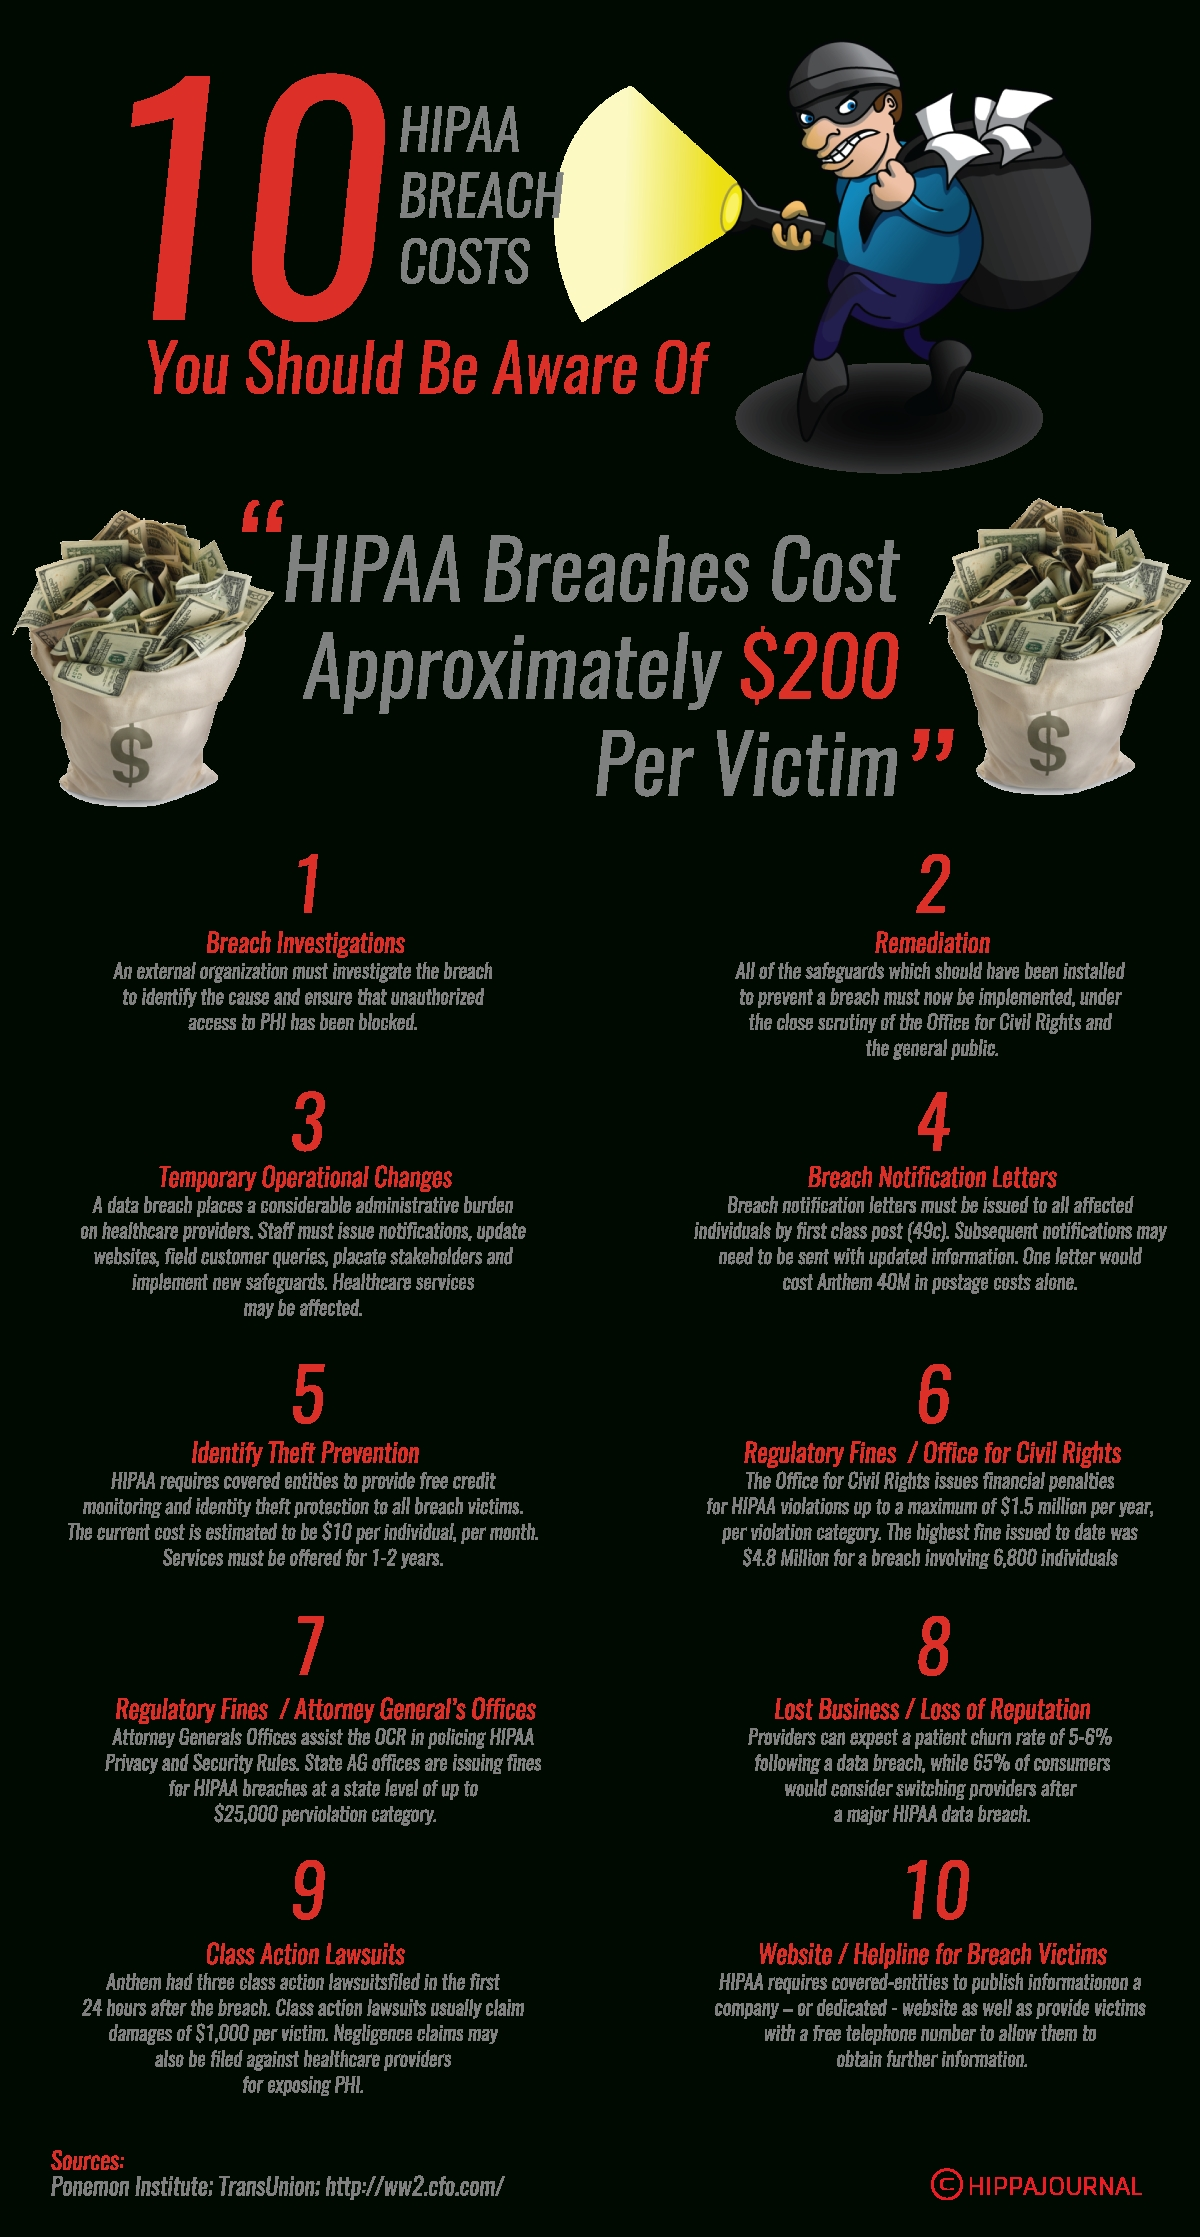 The Most Common Hipaa Violations You Should Be Aware Of pertaining to Examples Of Hipaa Violations 57981